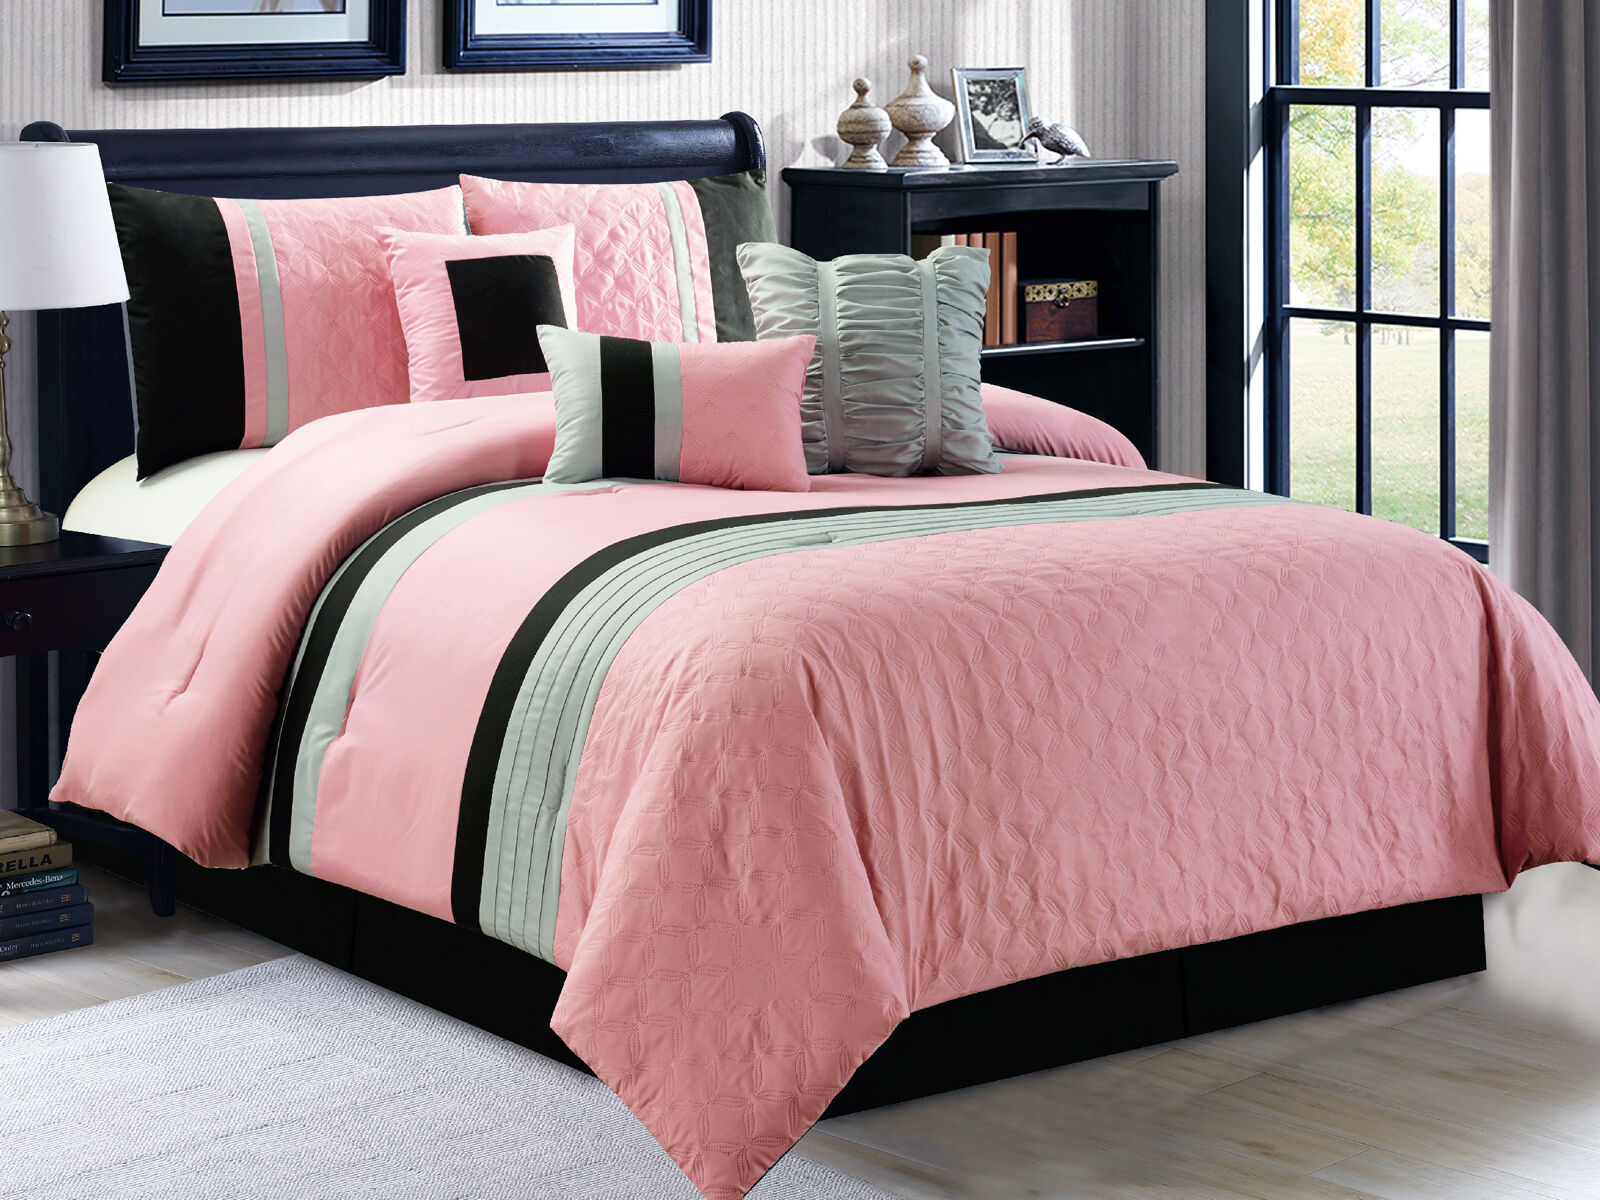 new 7 pc queen size embossed pleated ruffle pink black silver gray comforter set ebay. Black Bedroom Furniture Sets. Home Design Ideas